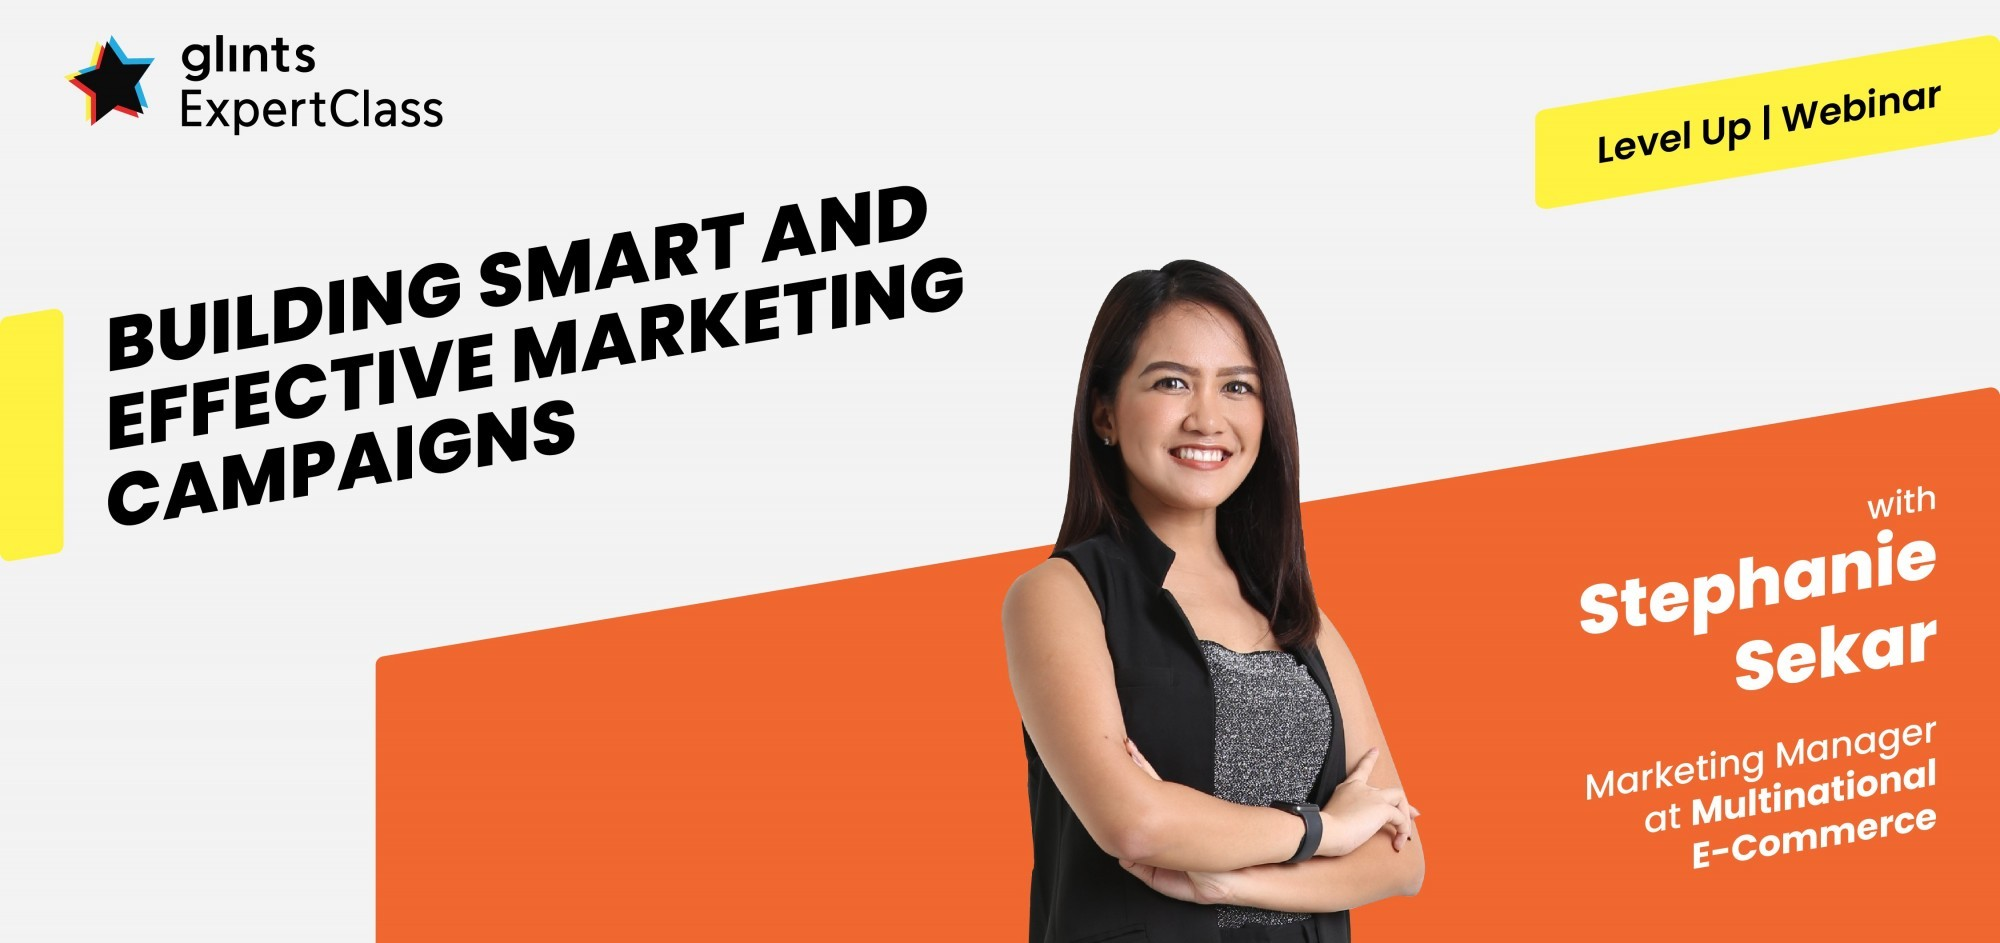 [Online Glints ExpertClass] Building Smart and Effective Marketing Campaigns